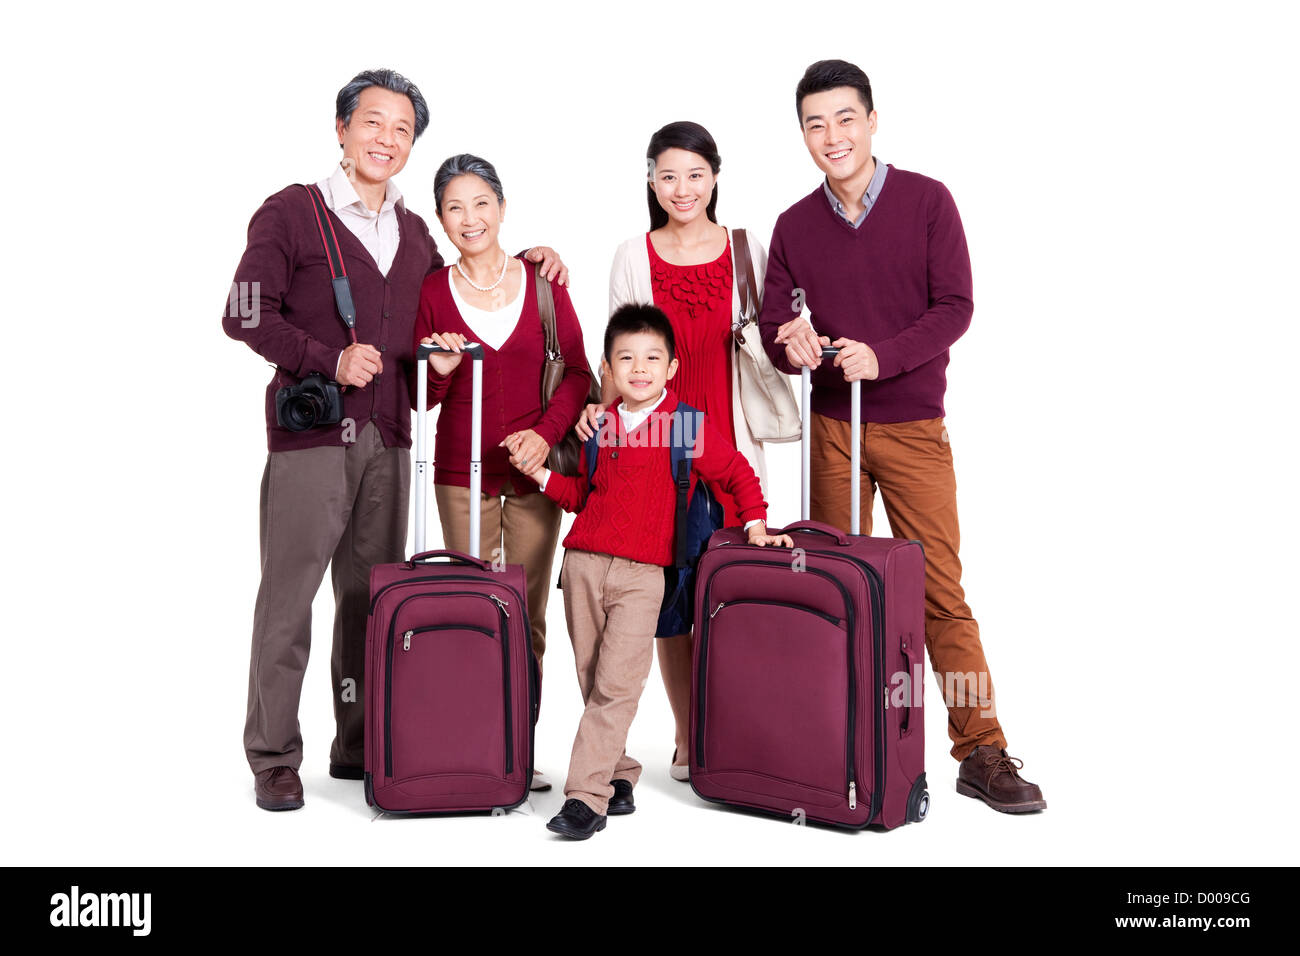 Joyful family going for a vacation - Stock Image